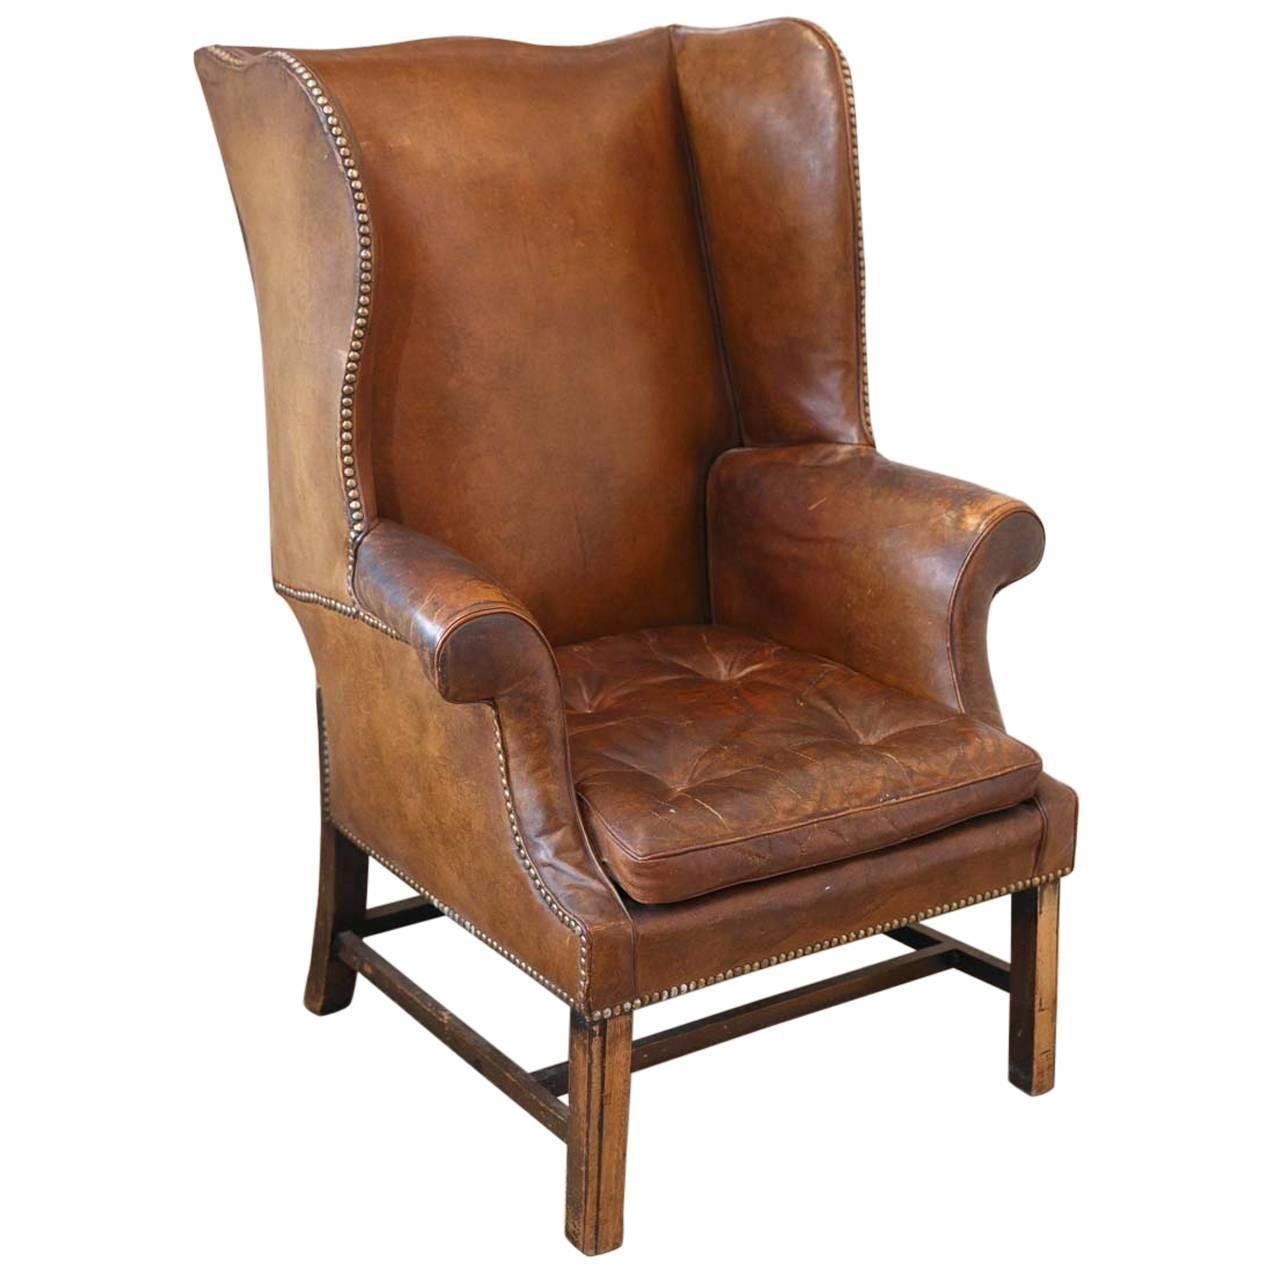 Brown Leather Wingback Chair French Leather Wingback Chair From The 1920s Laurier Blanc